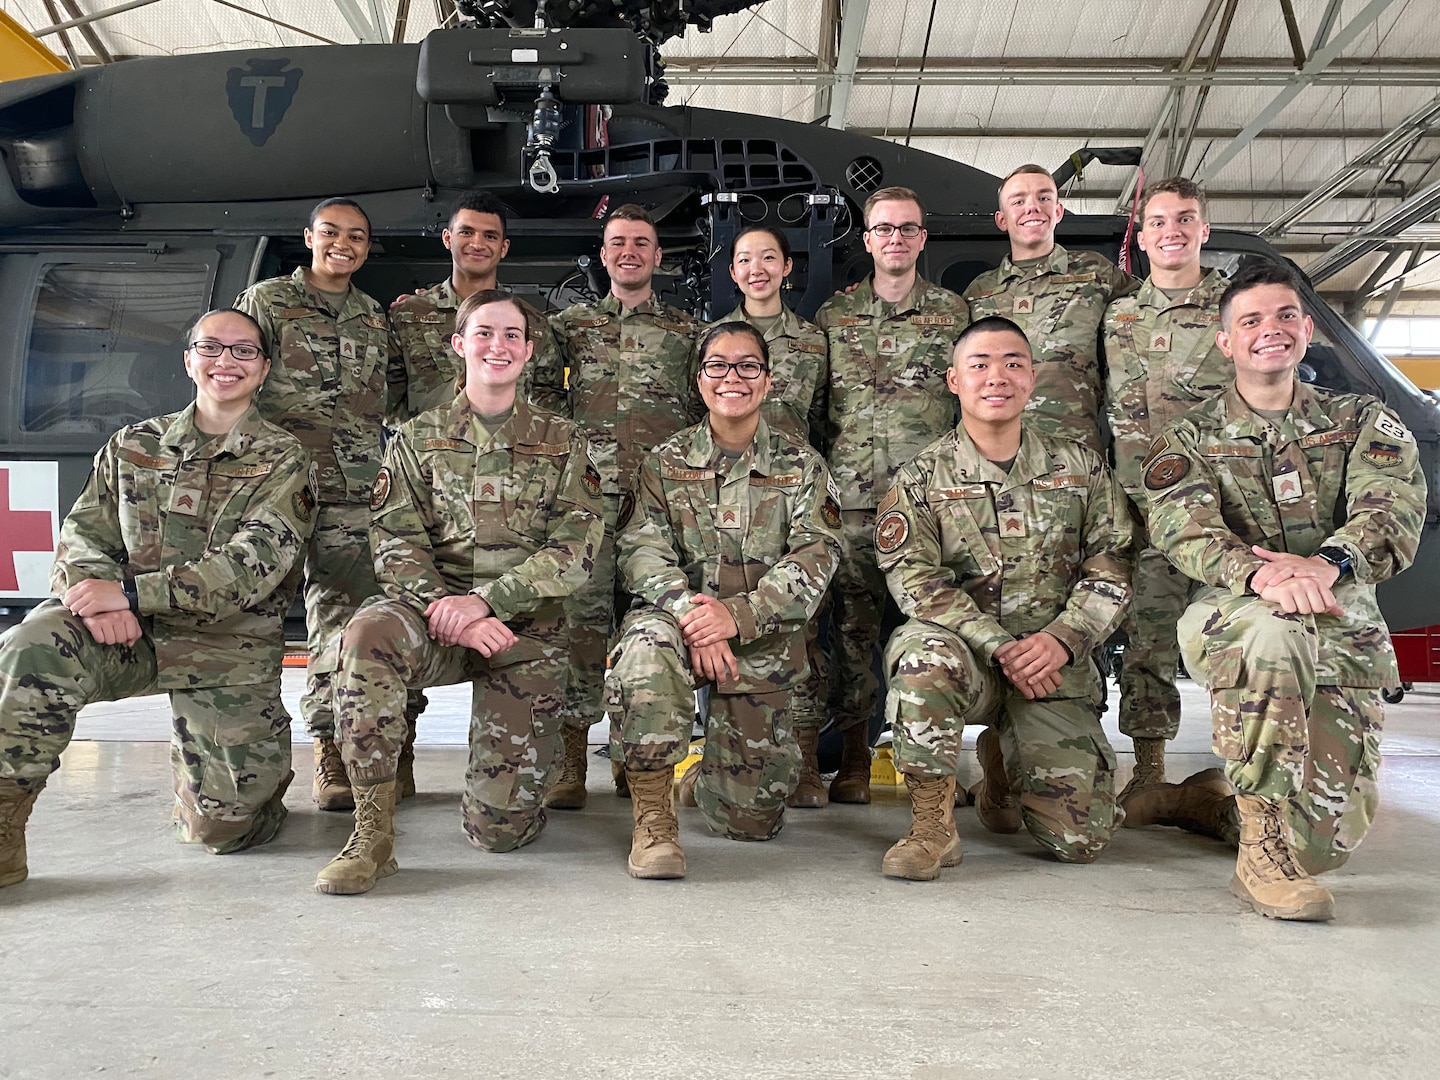 Cadets from the U.S. Air Force Academy pose in front of a UH-60 Blackhawk helicopter at Martindale Army Airfield, San Antonio, Texas, May 28, 2021.